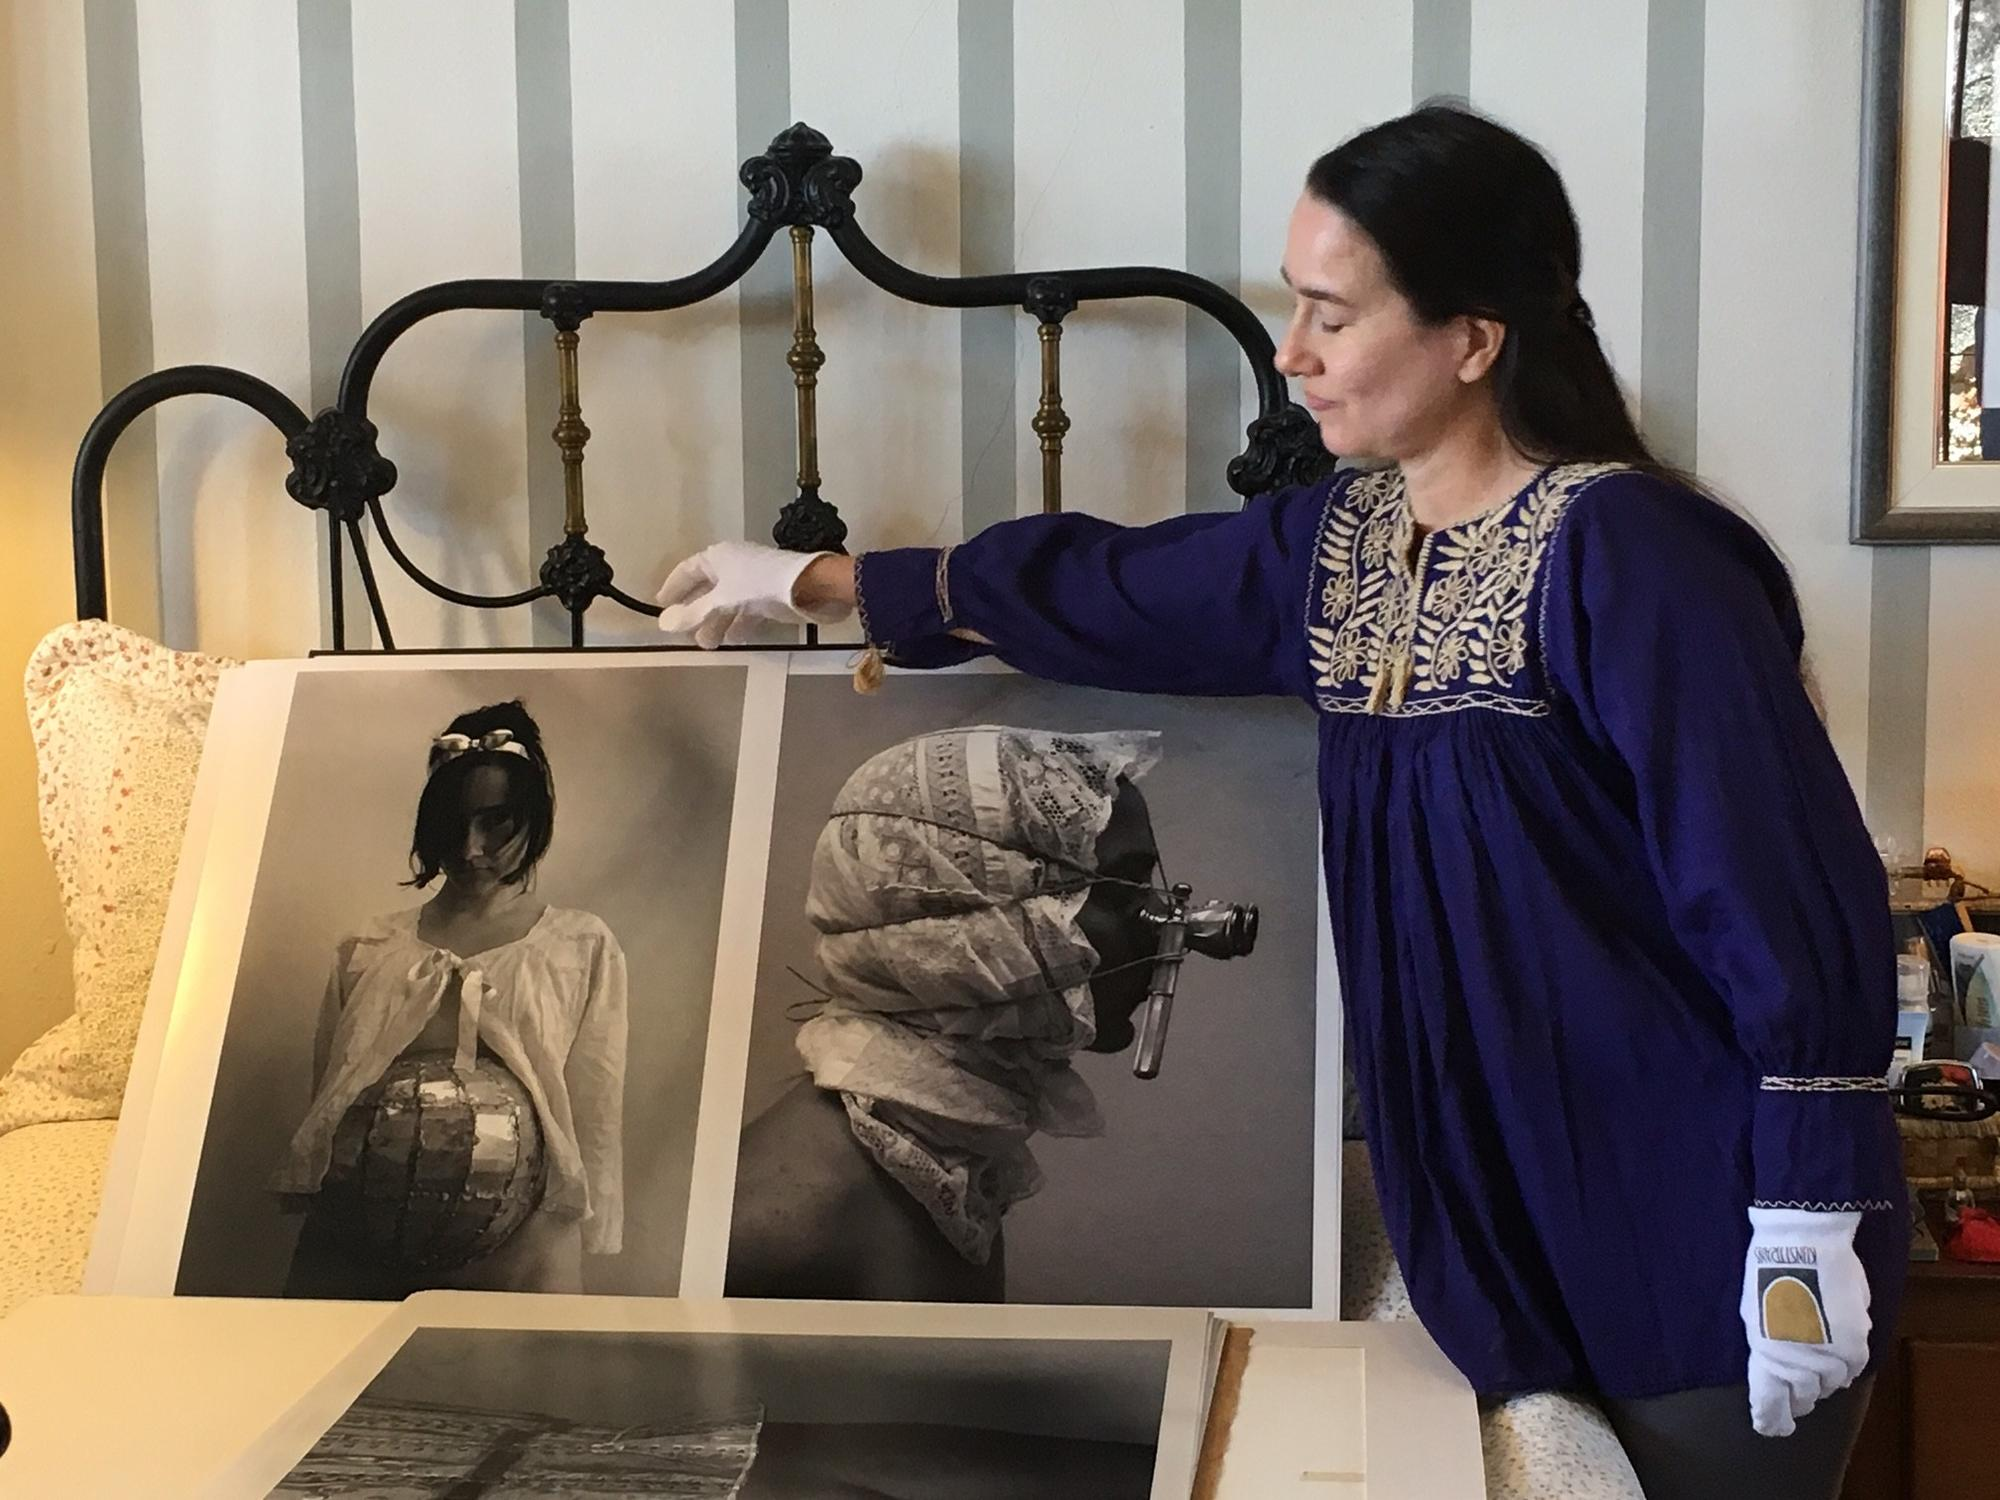 Artist Cirenaica Moreira displays her photographs at her home in Cojimar, Cuba.